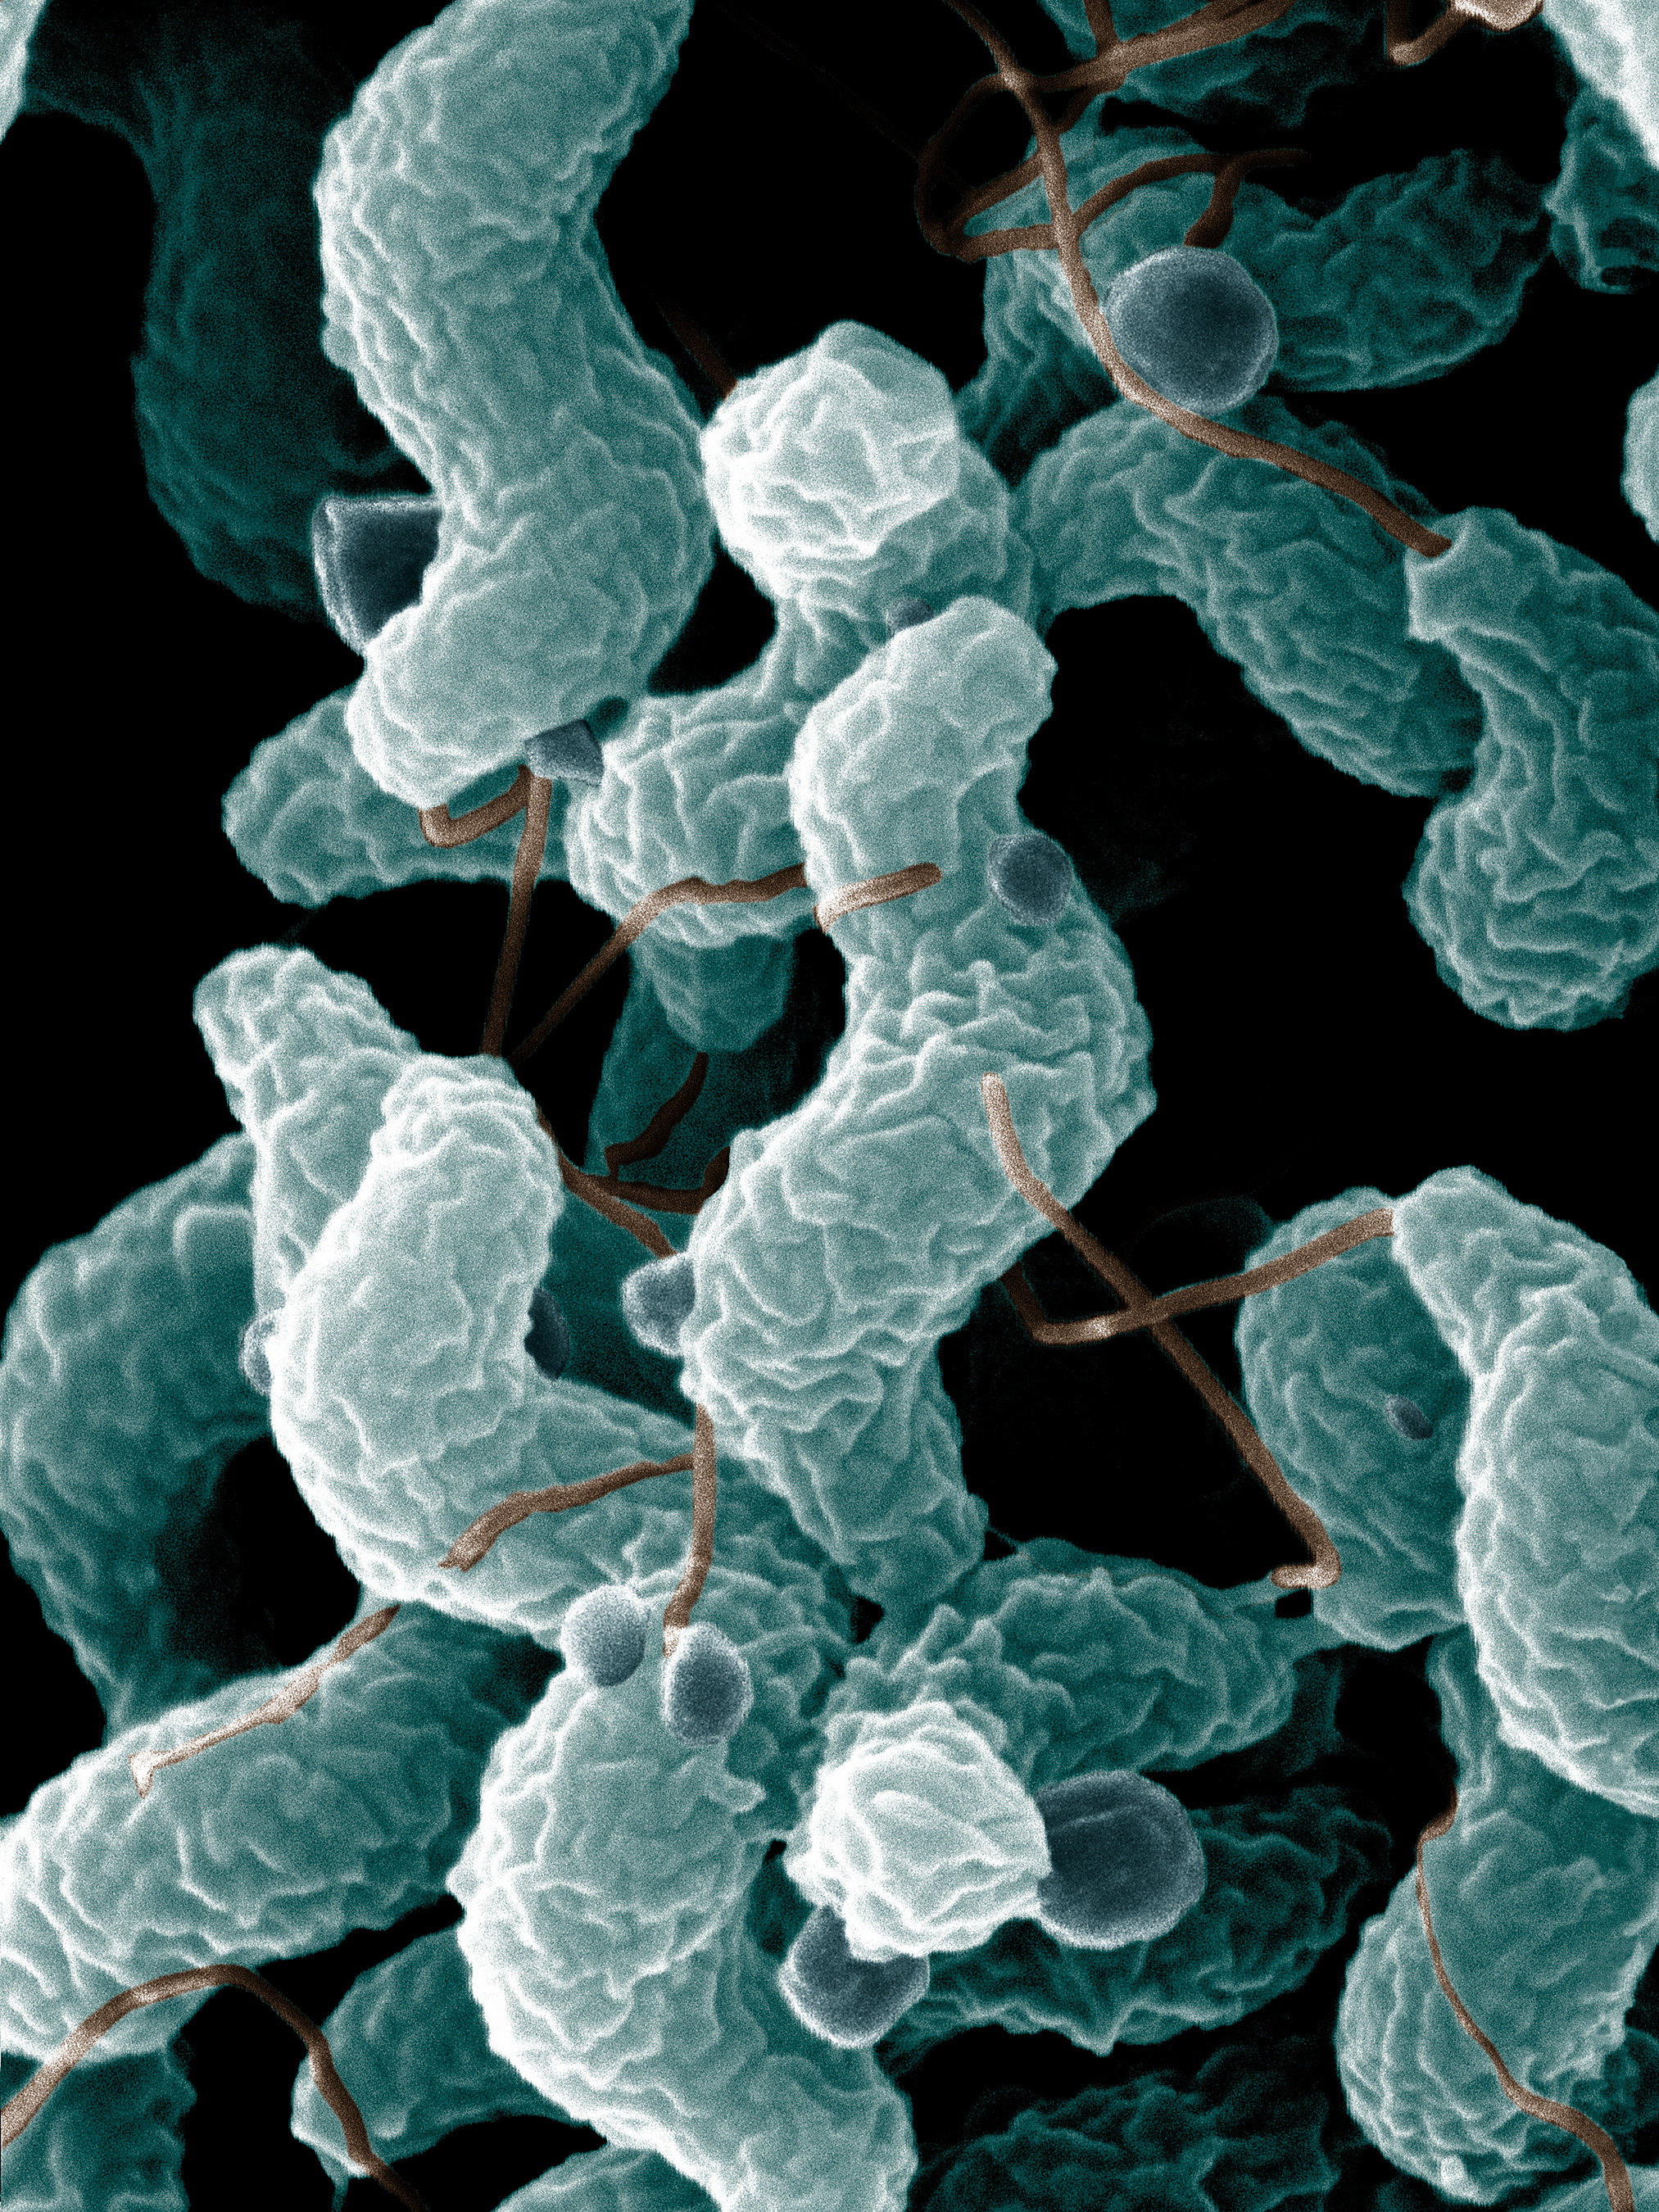 What Does Campylobacter Jejuni Need To Thrive